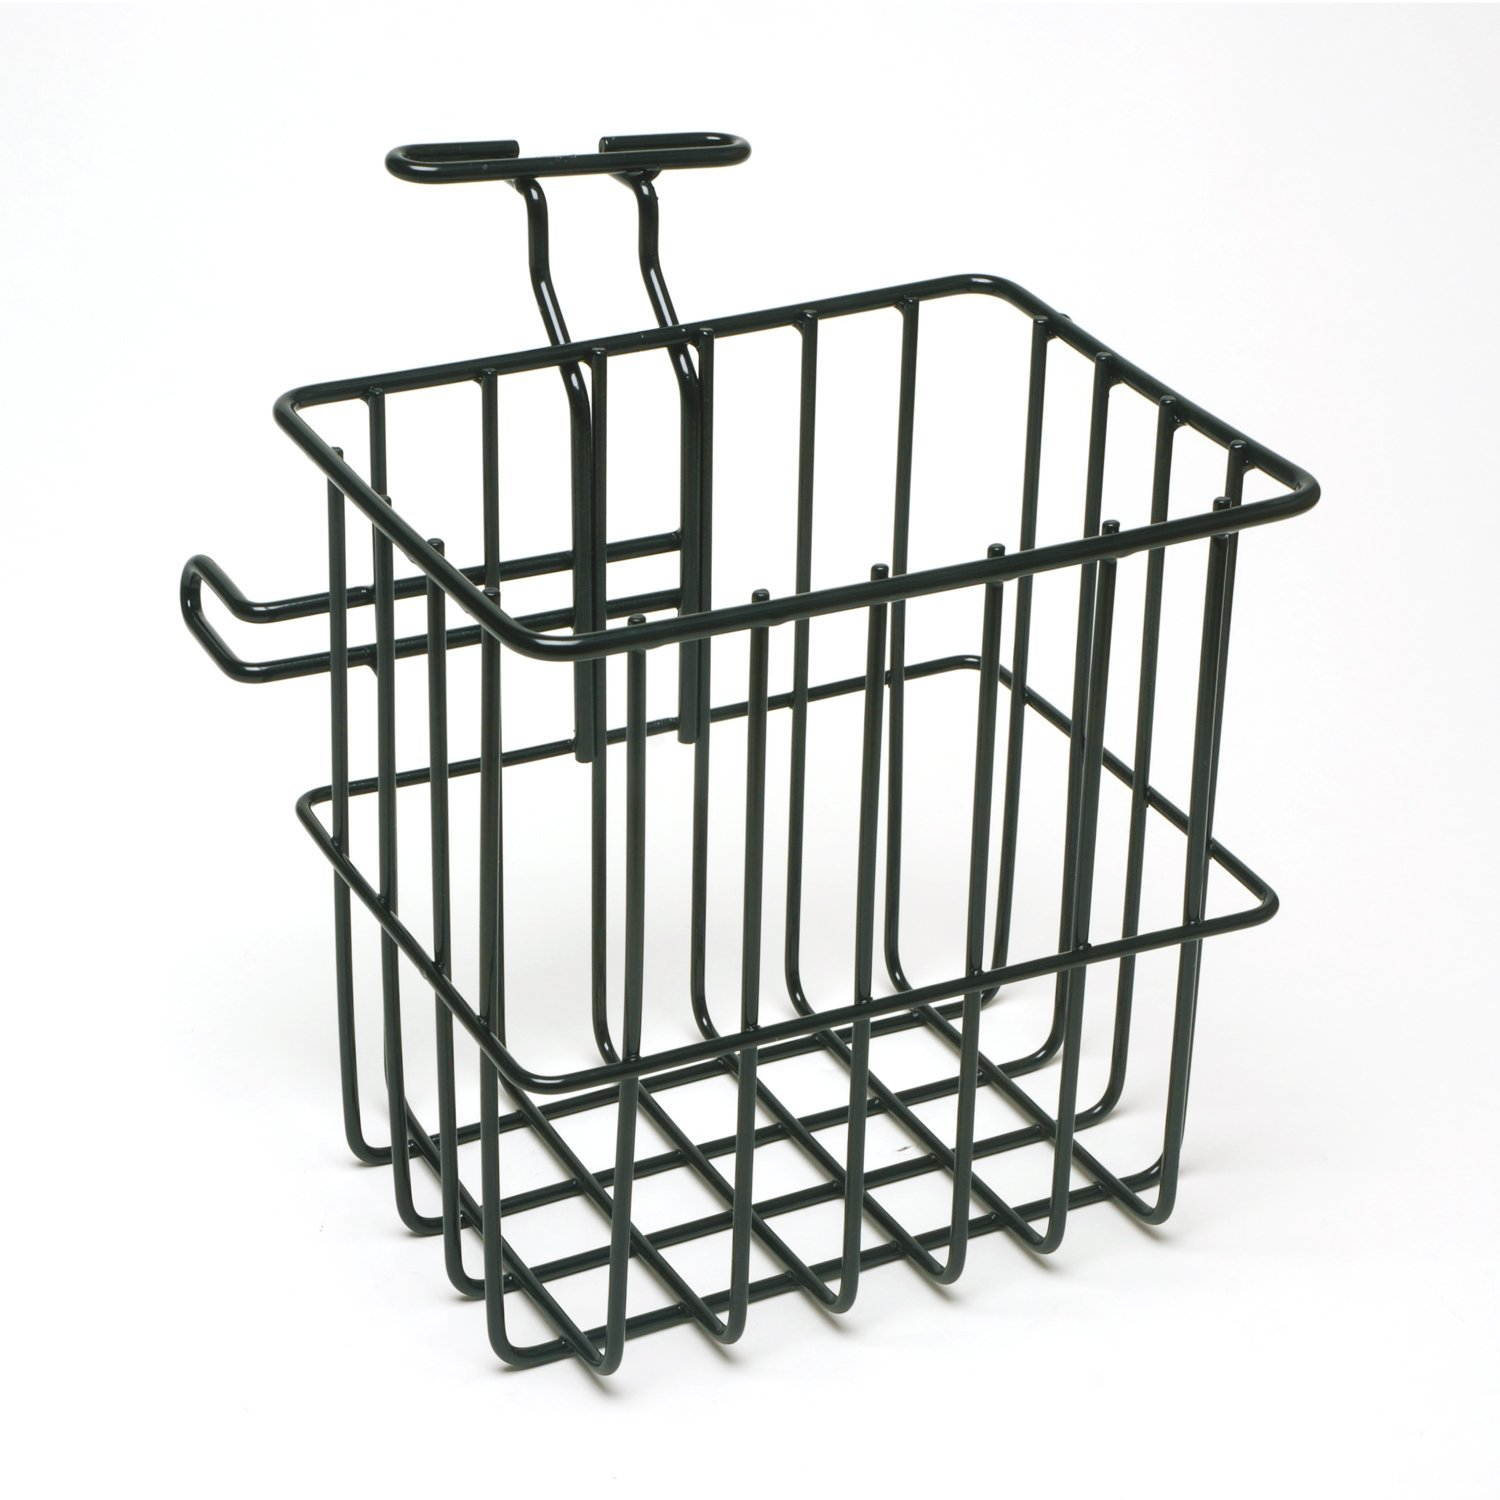 Buy EZGO 603702 Wireform Side Basket for RXV, Passengers